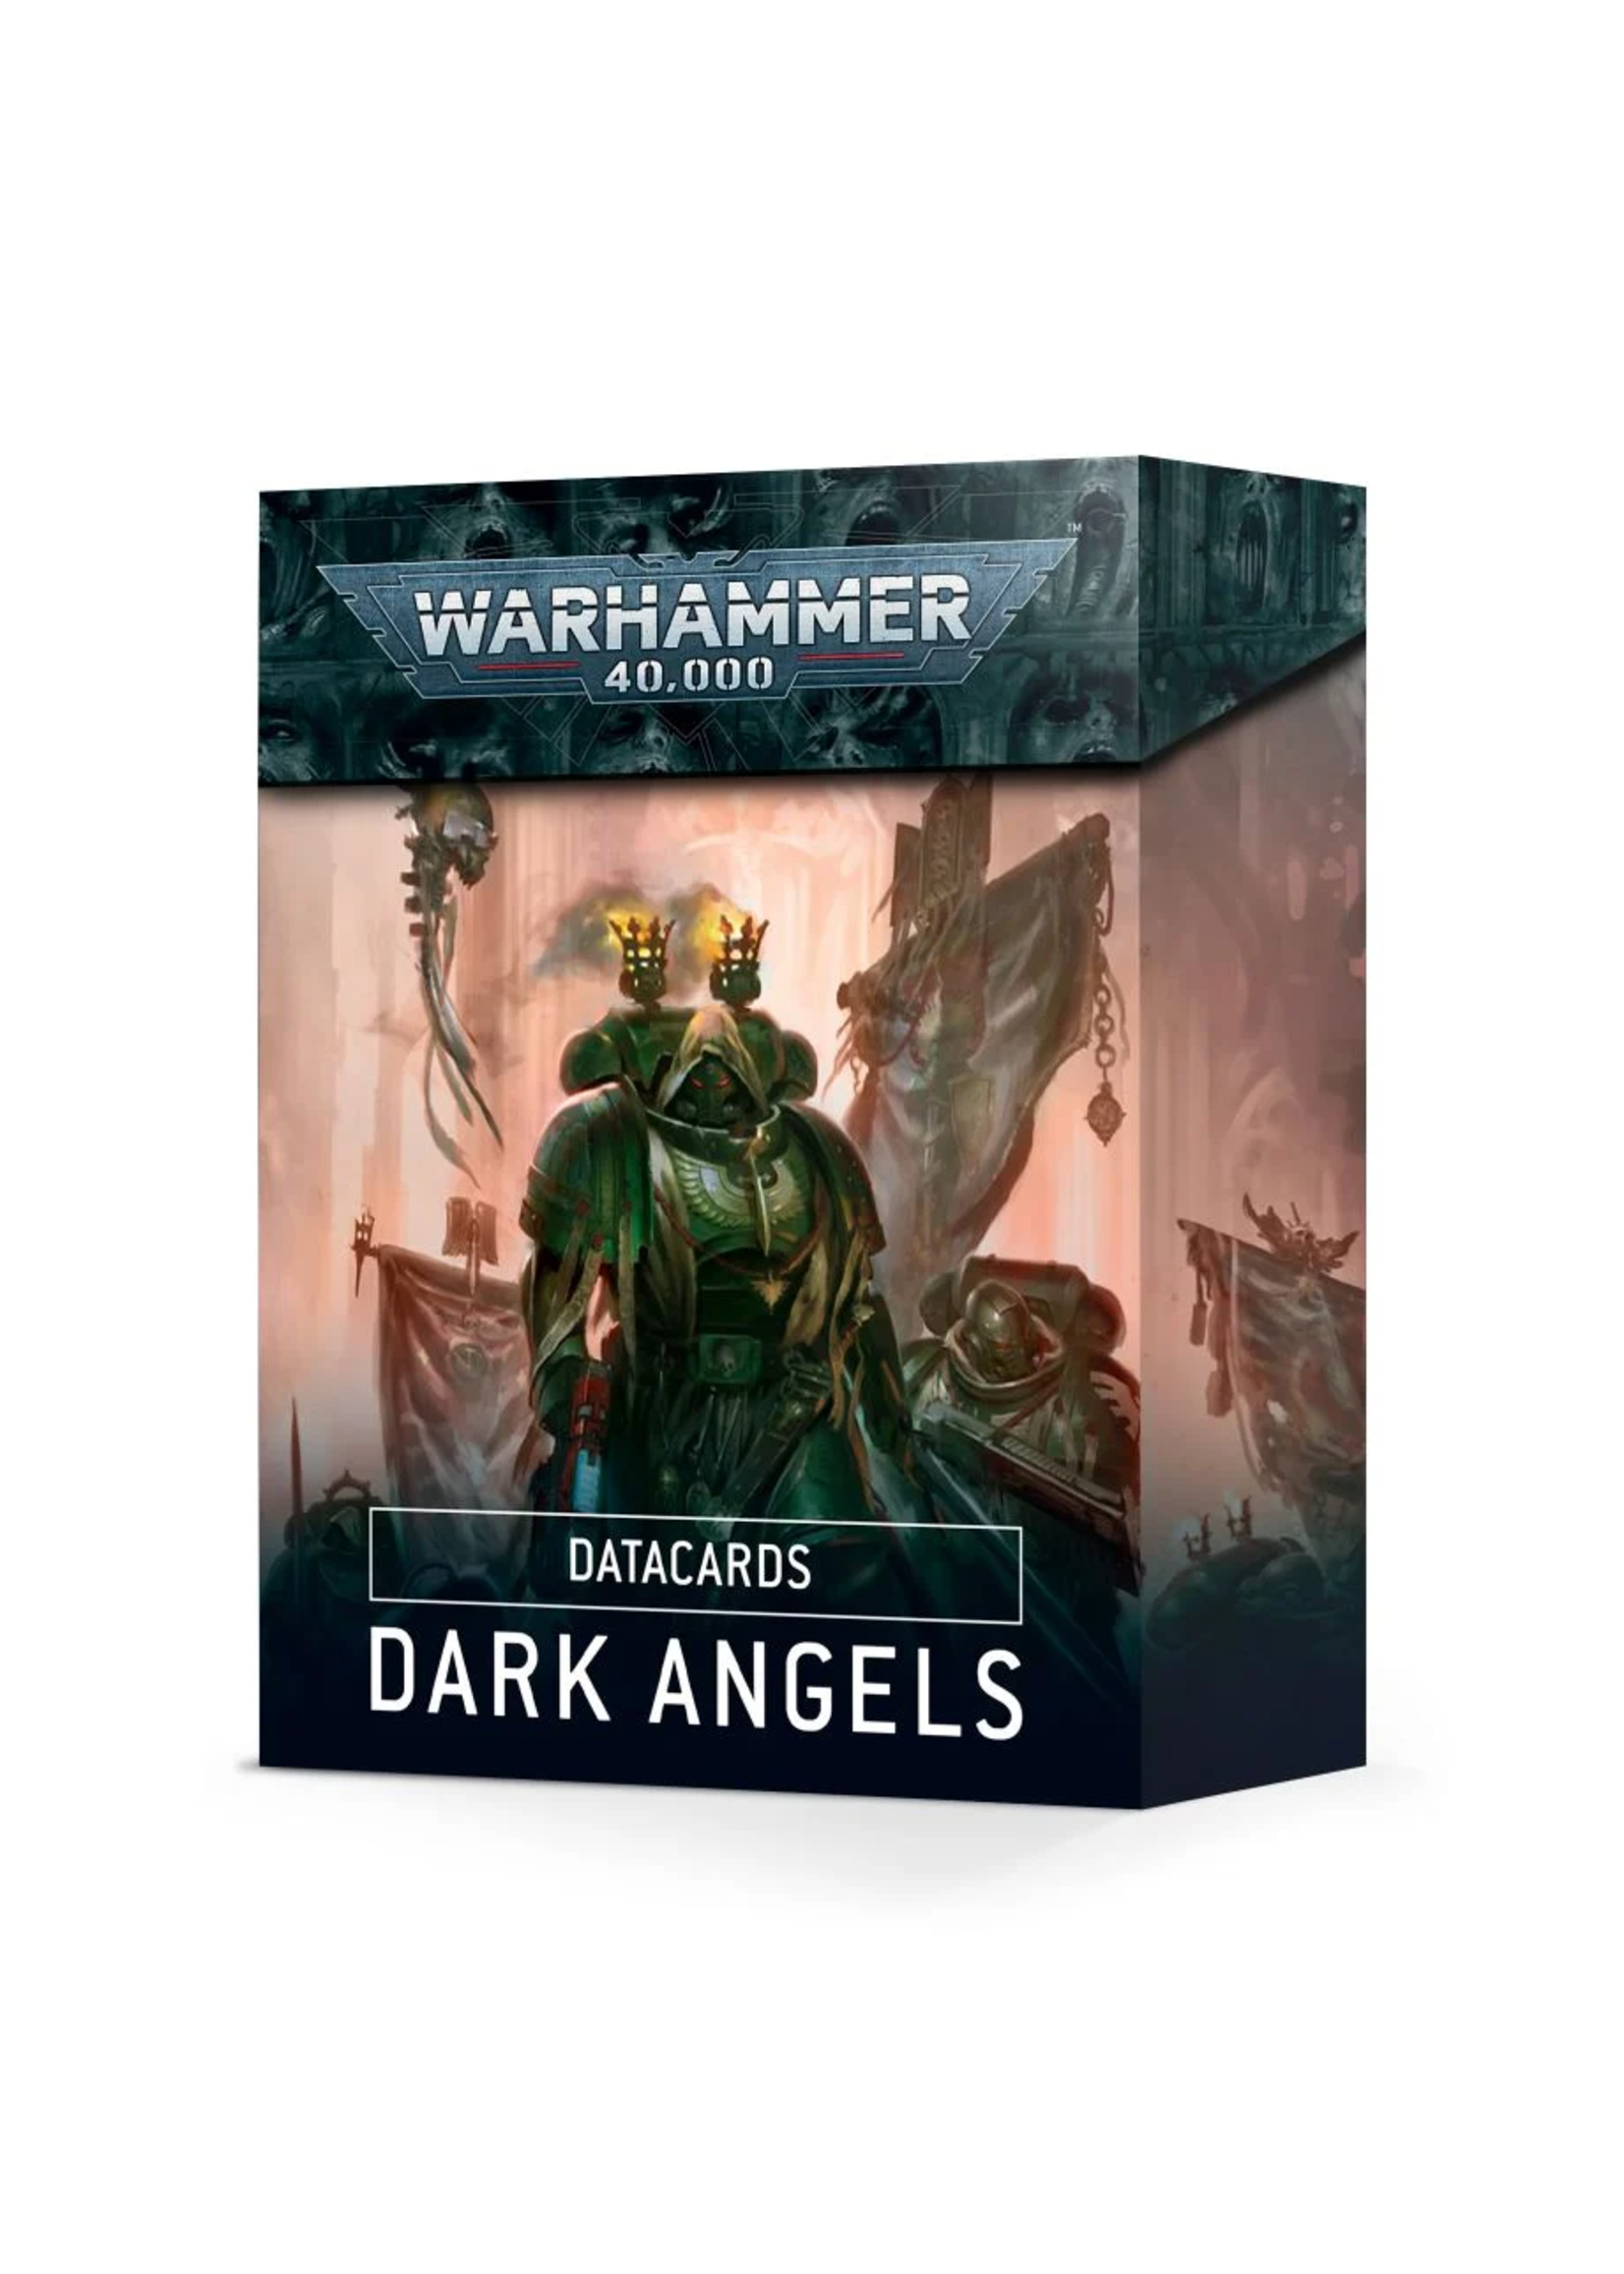 DATACARDS: DARK ANGELS